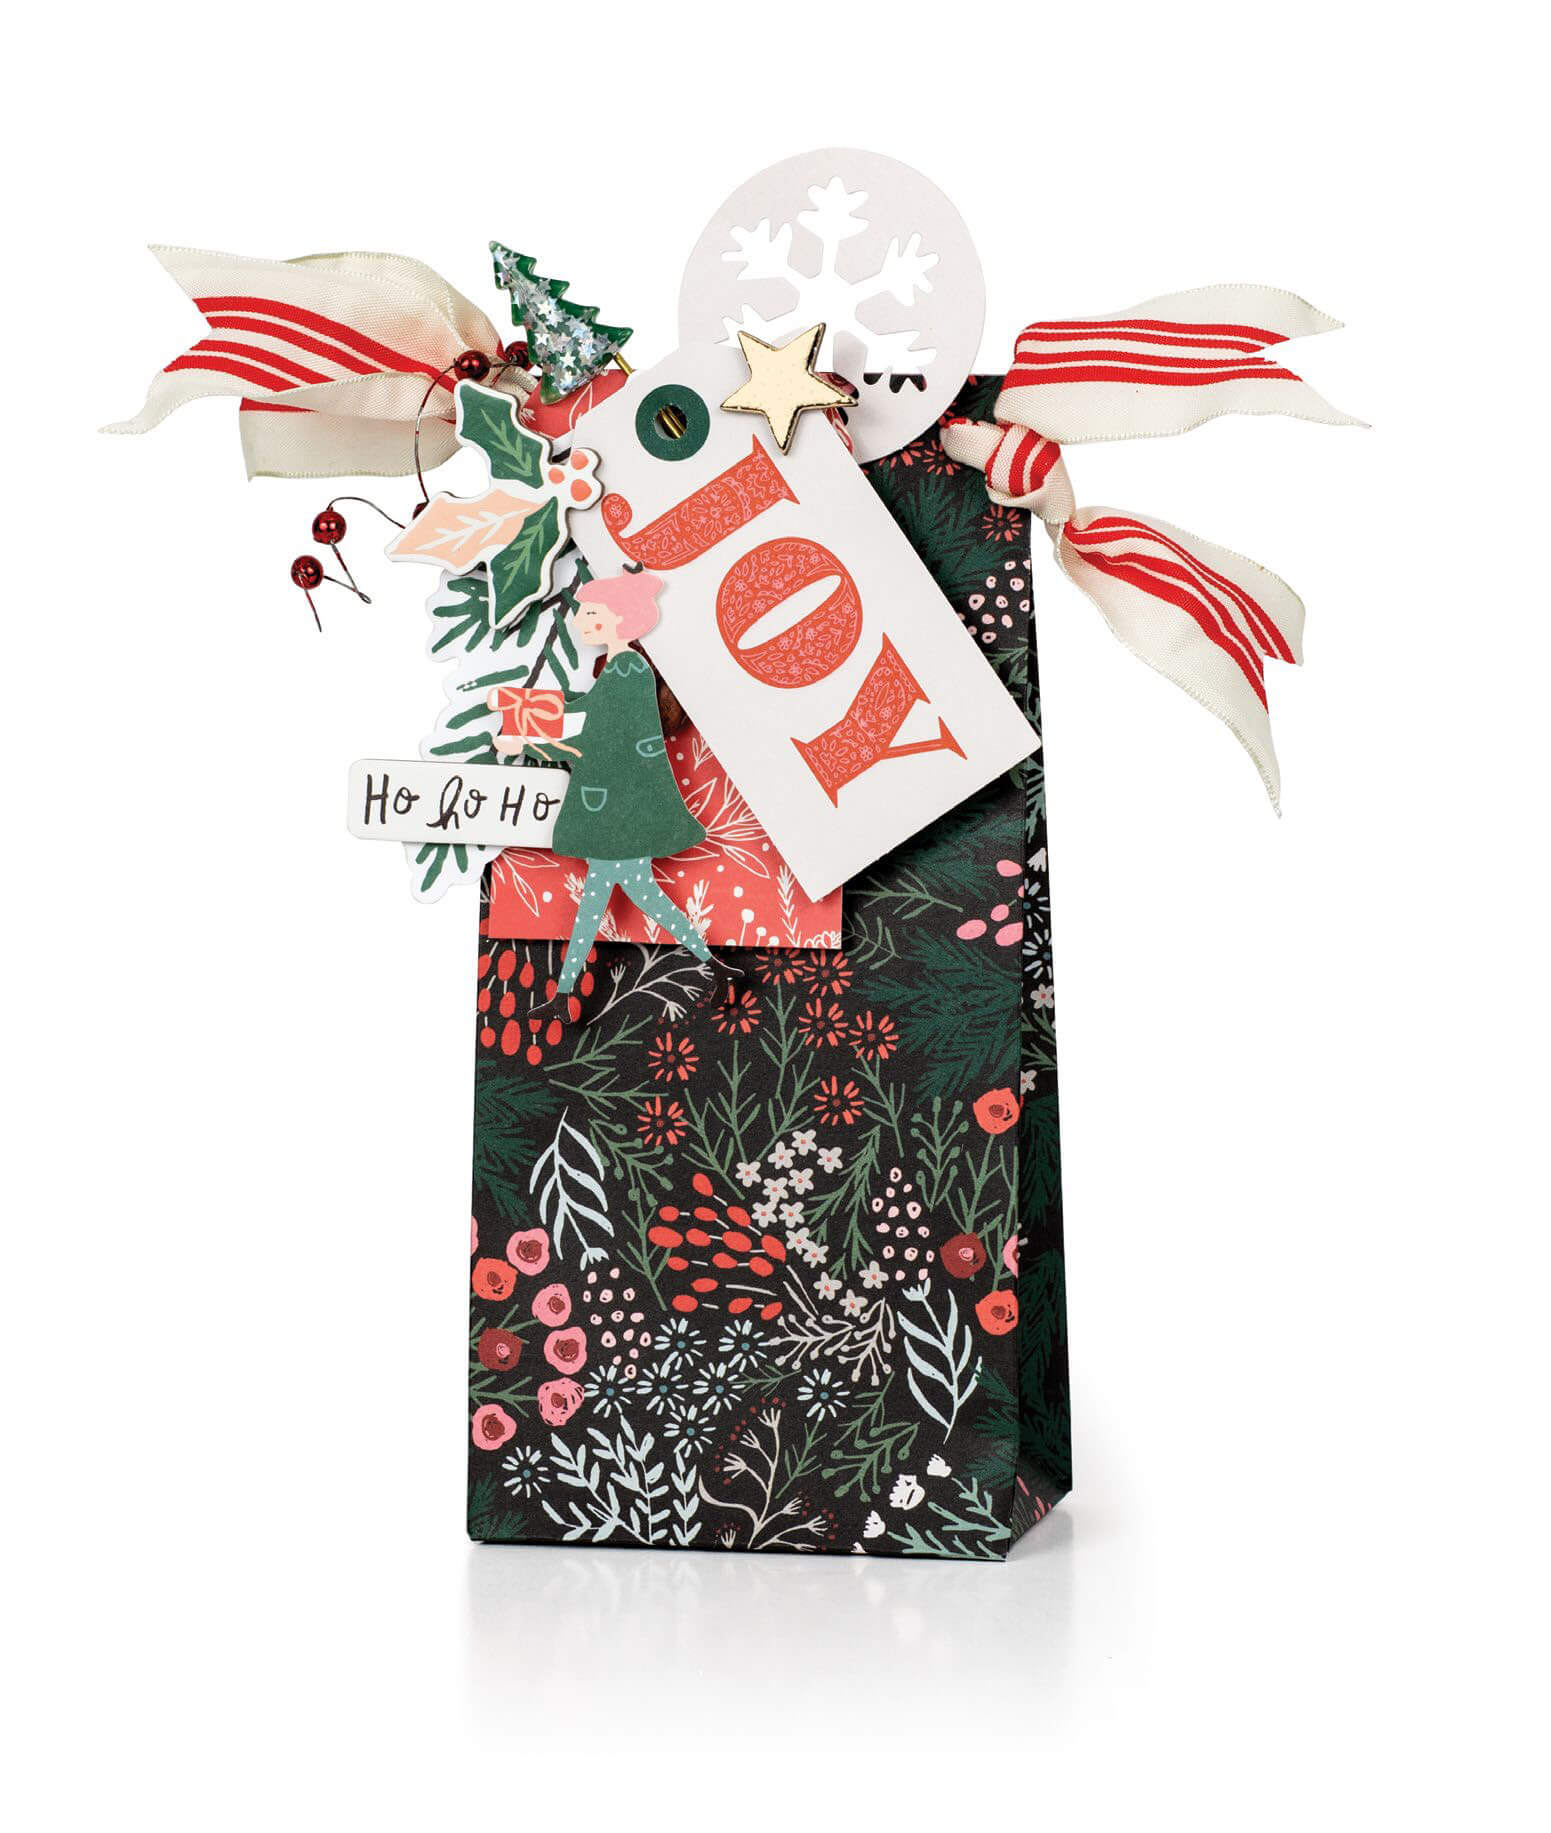 SCT Winter 2018 - Joy Gift Bag by Latisha Yoast